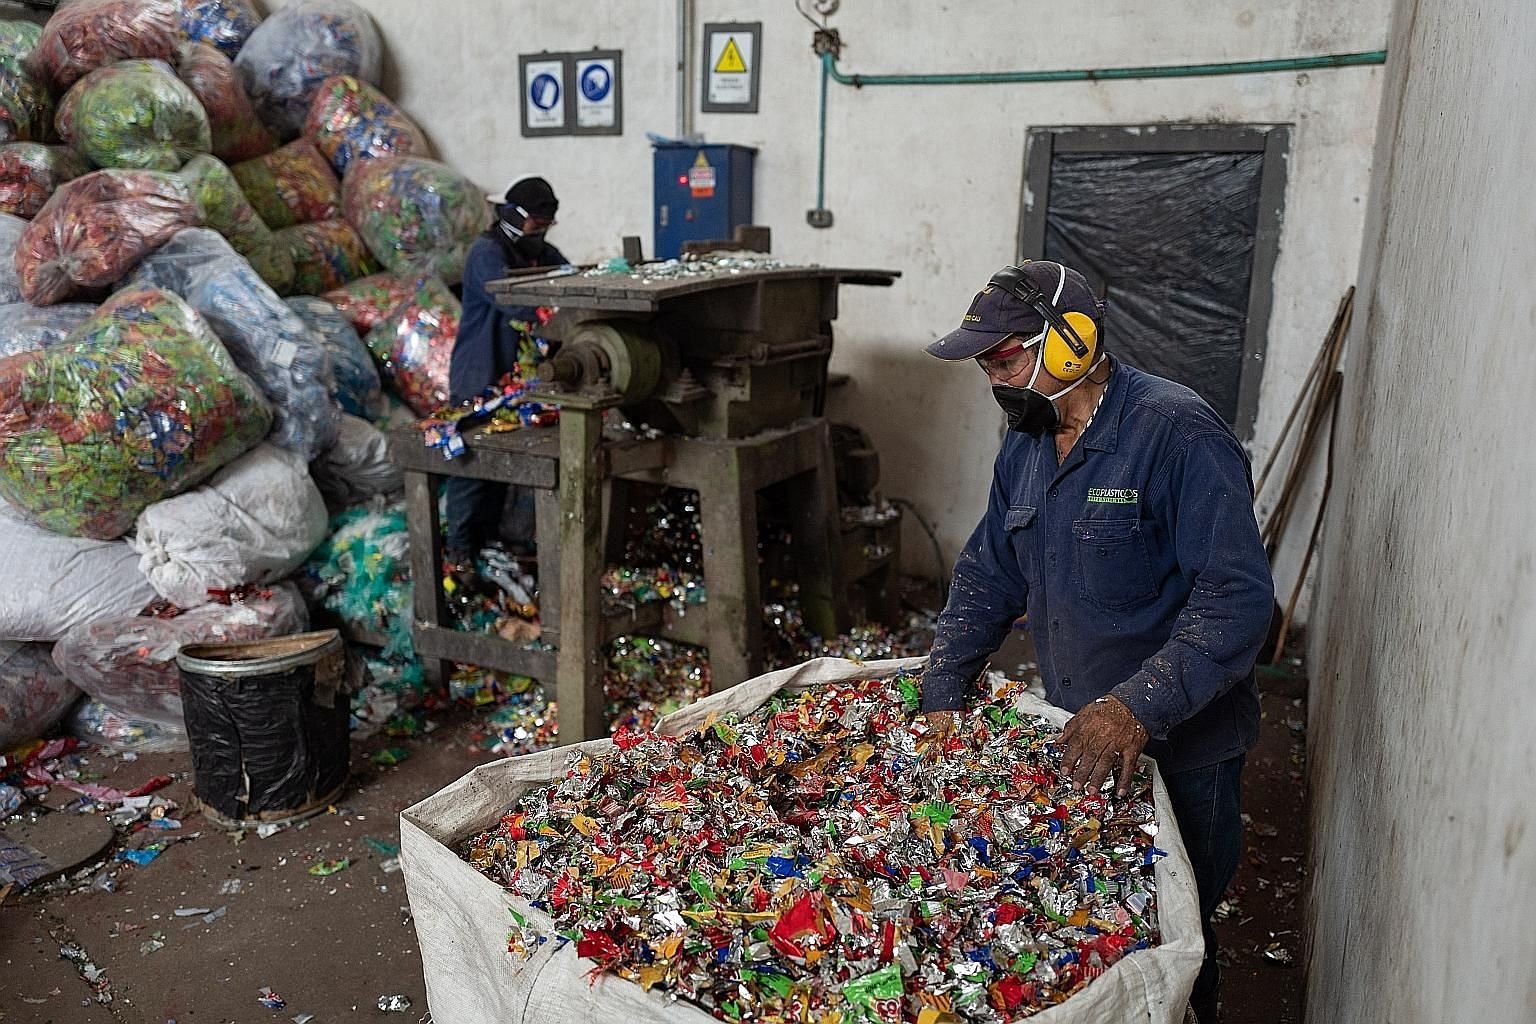 """Colombia's Ecoplasticos recycles and reforms nearly 40 tonnes of plastic waste monthly, transforming it into """"plastic wood"""" that can be used to build pre-fabricated homes and playgrounds, among other things. Malaysia's Energy Minister Yeo Bee Yin wit"""